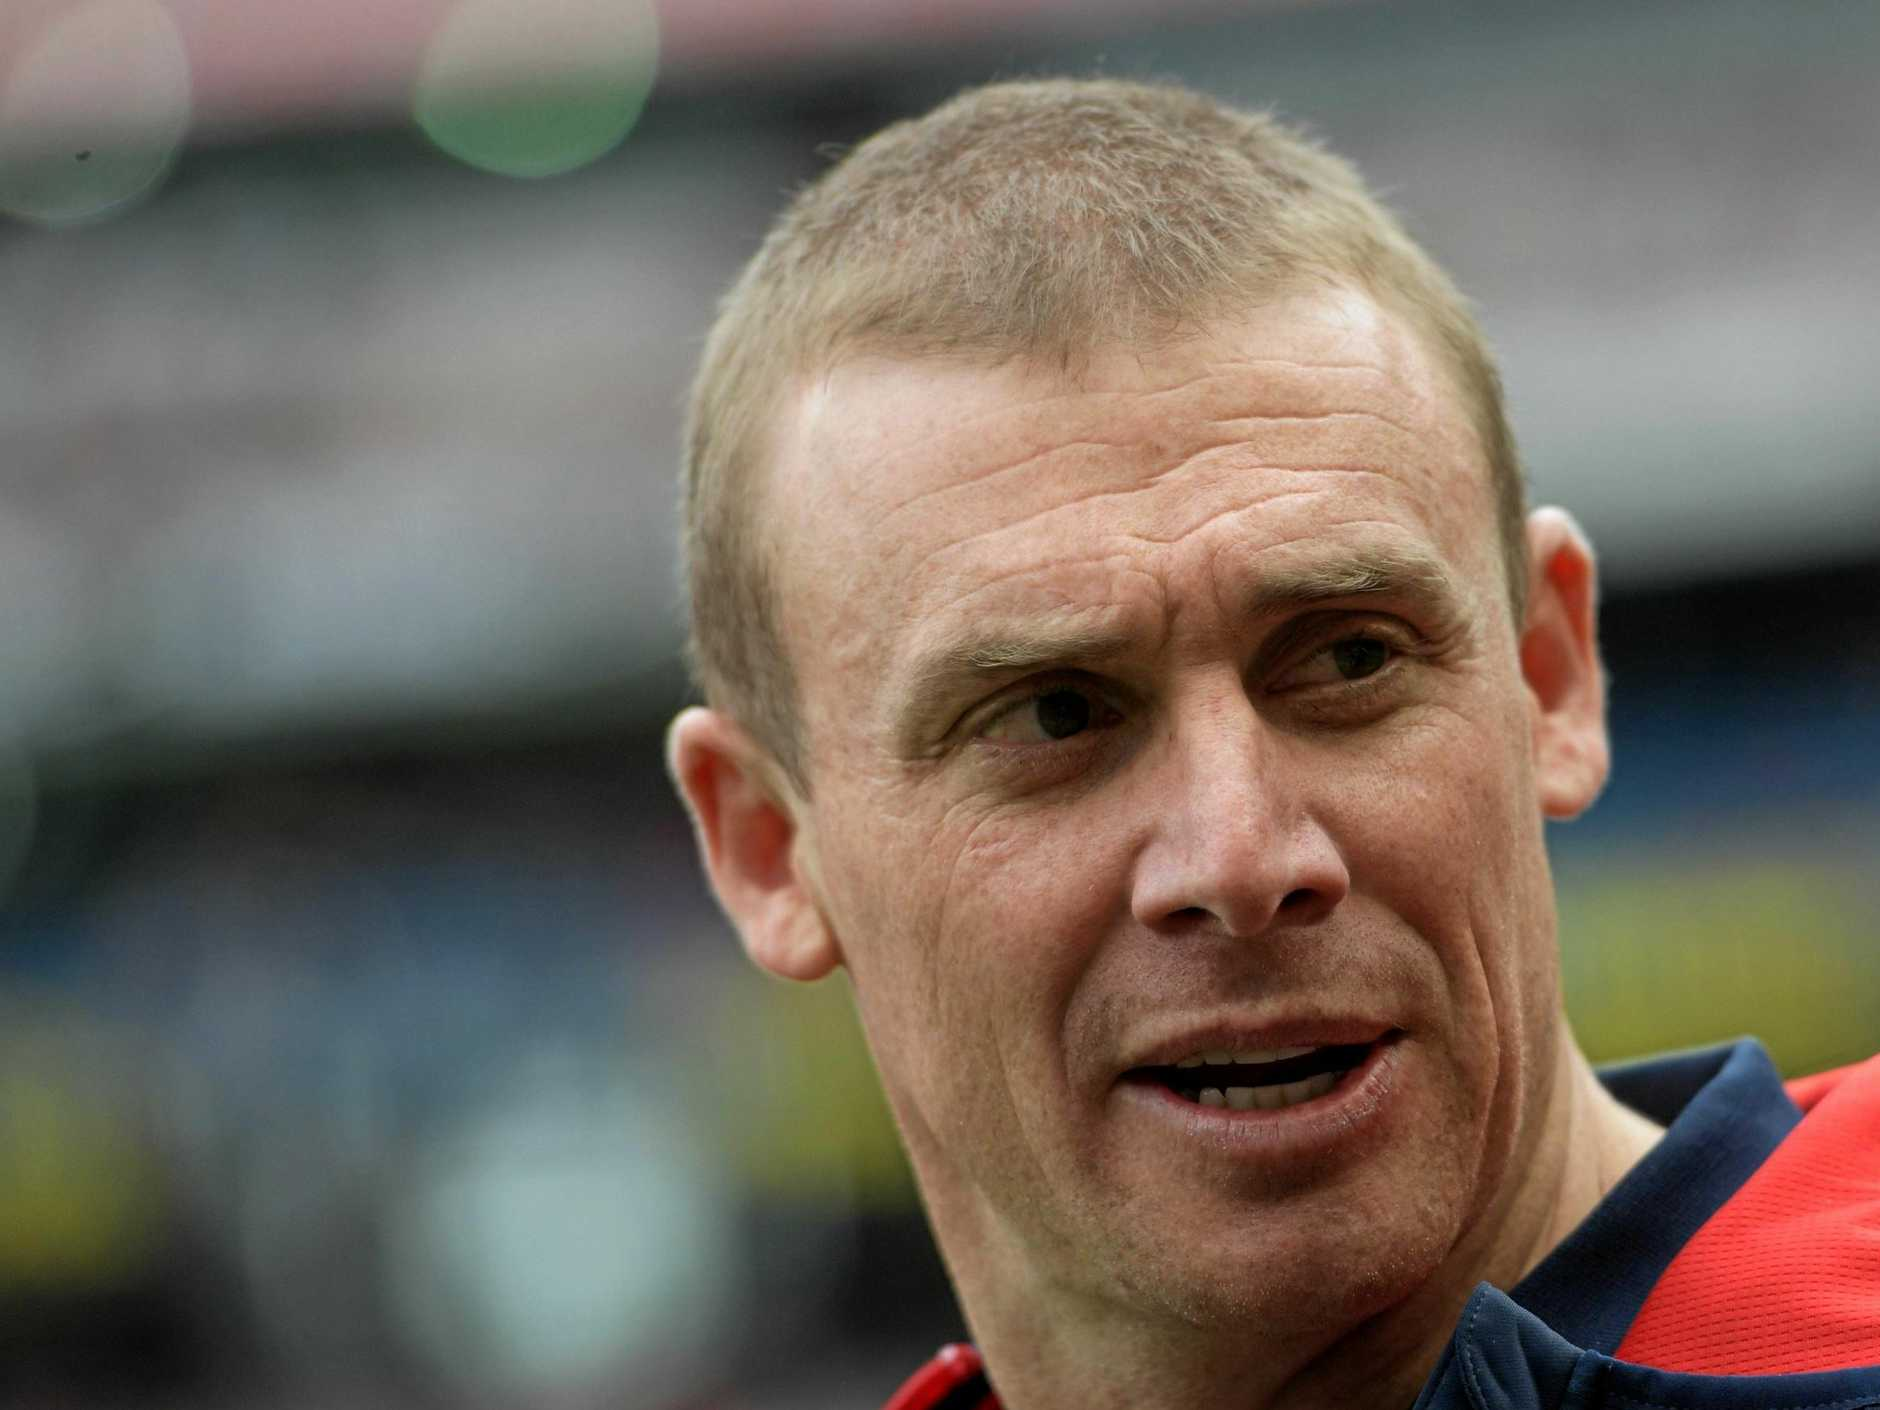 Melbourne coach Simon Goodwin has suggested dividing the AFL teams in conferences.